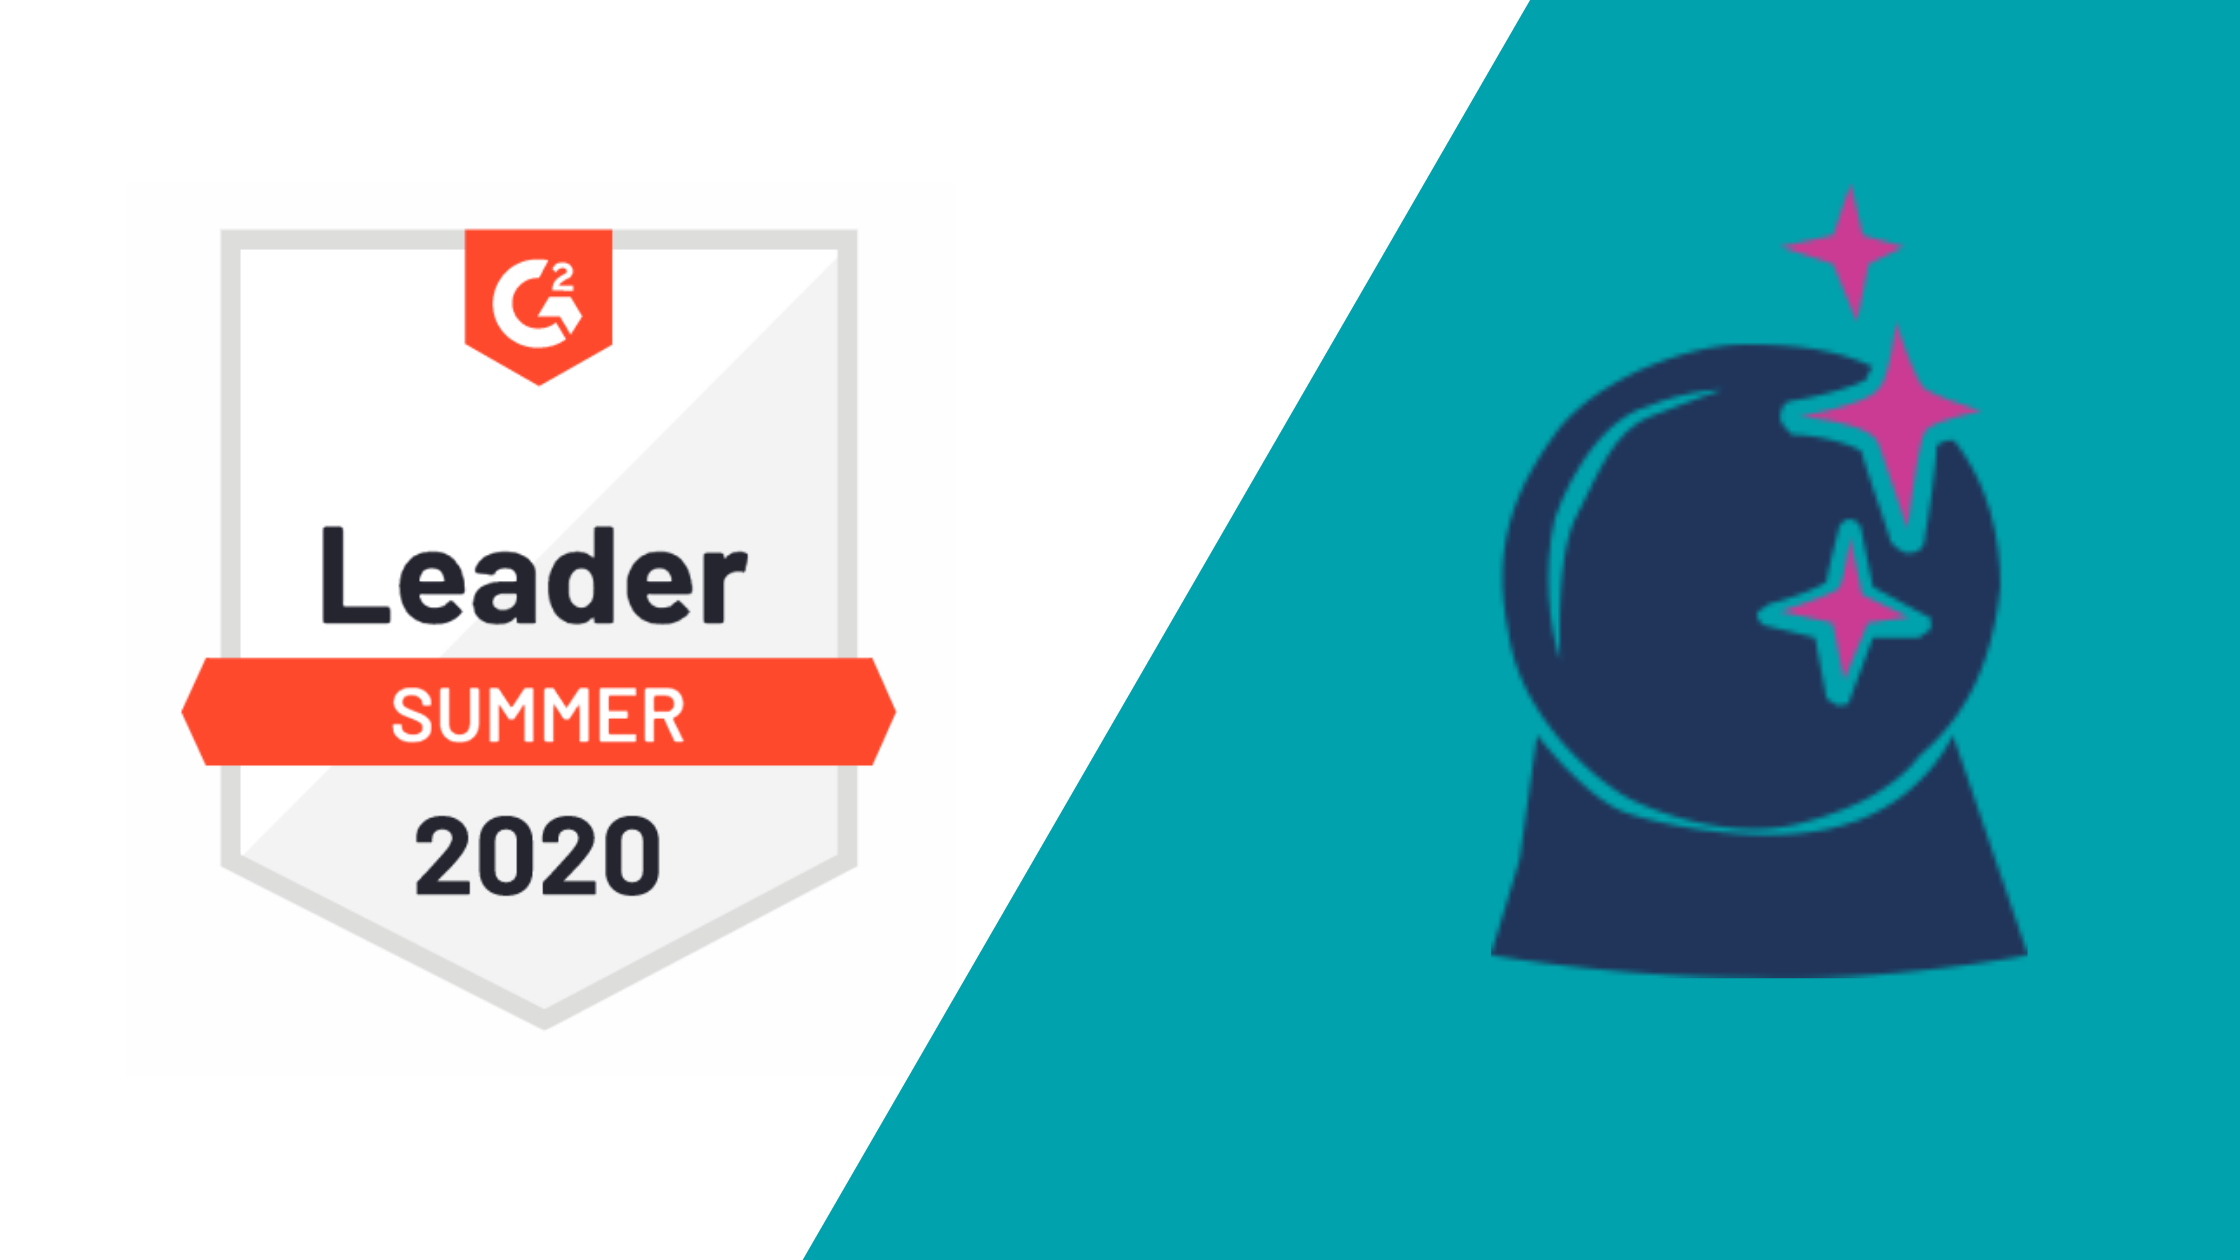 Marketing Analytics Software: Pathmatics Ranked a Leader by G2 Crowd